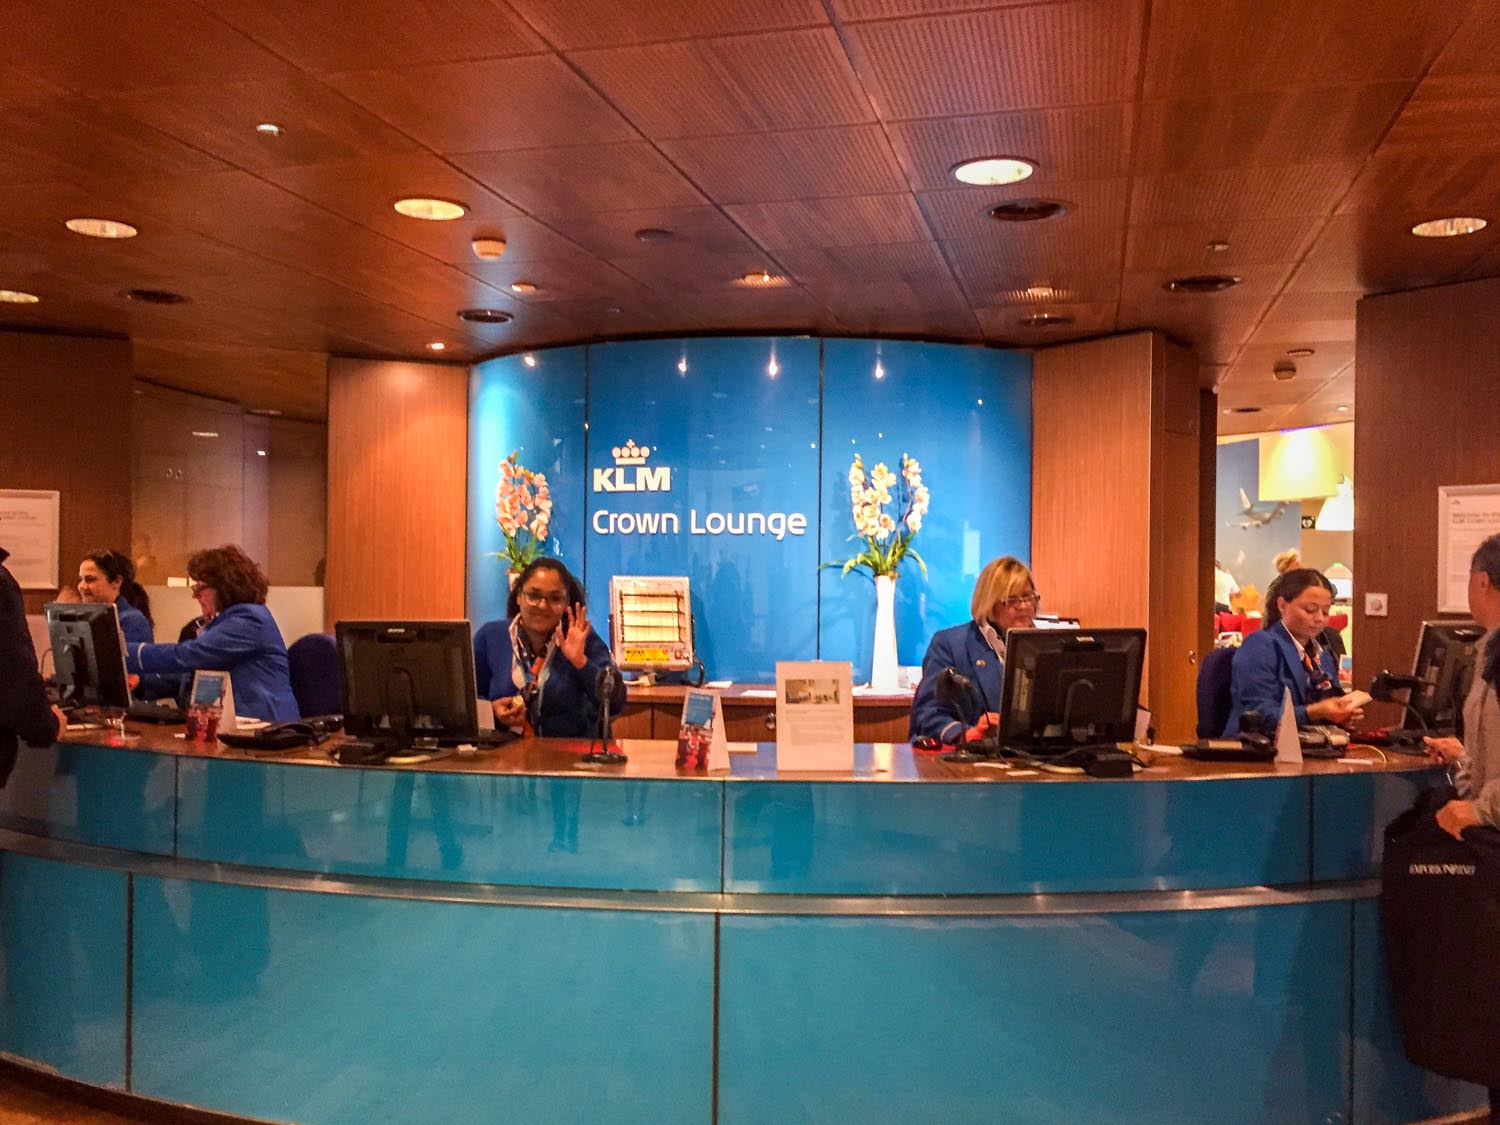 The reception area for KLM Crown Lounge 52.